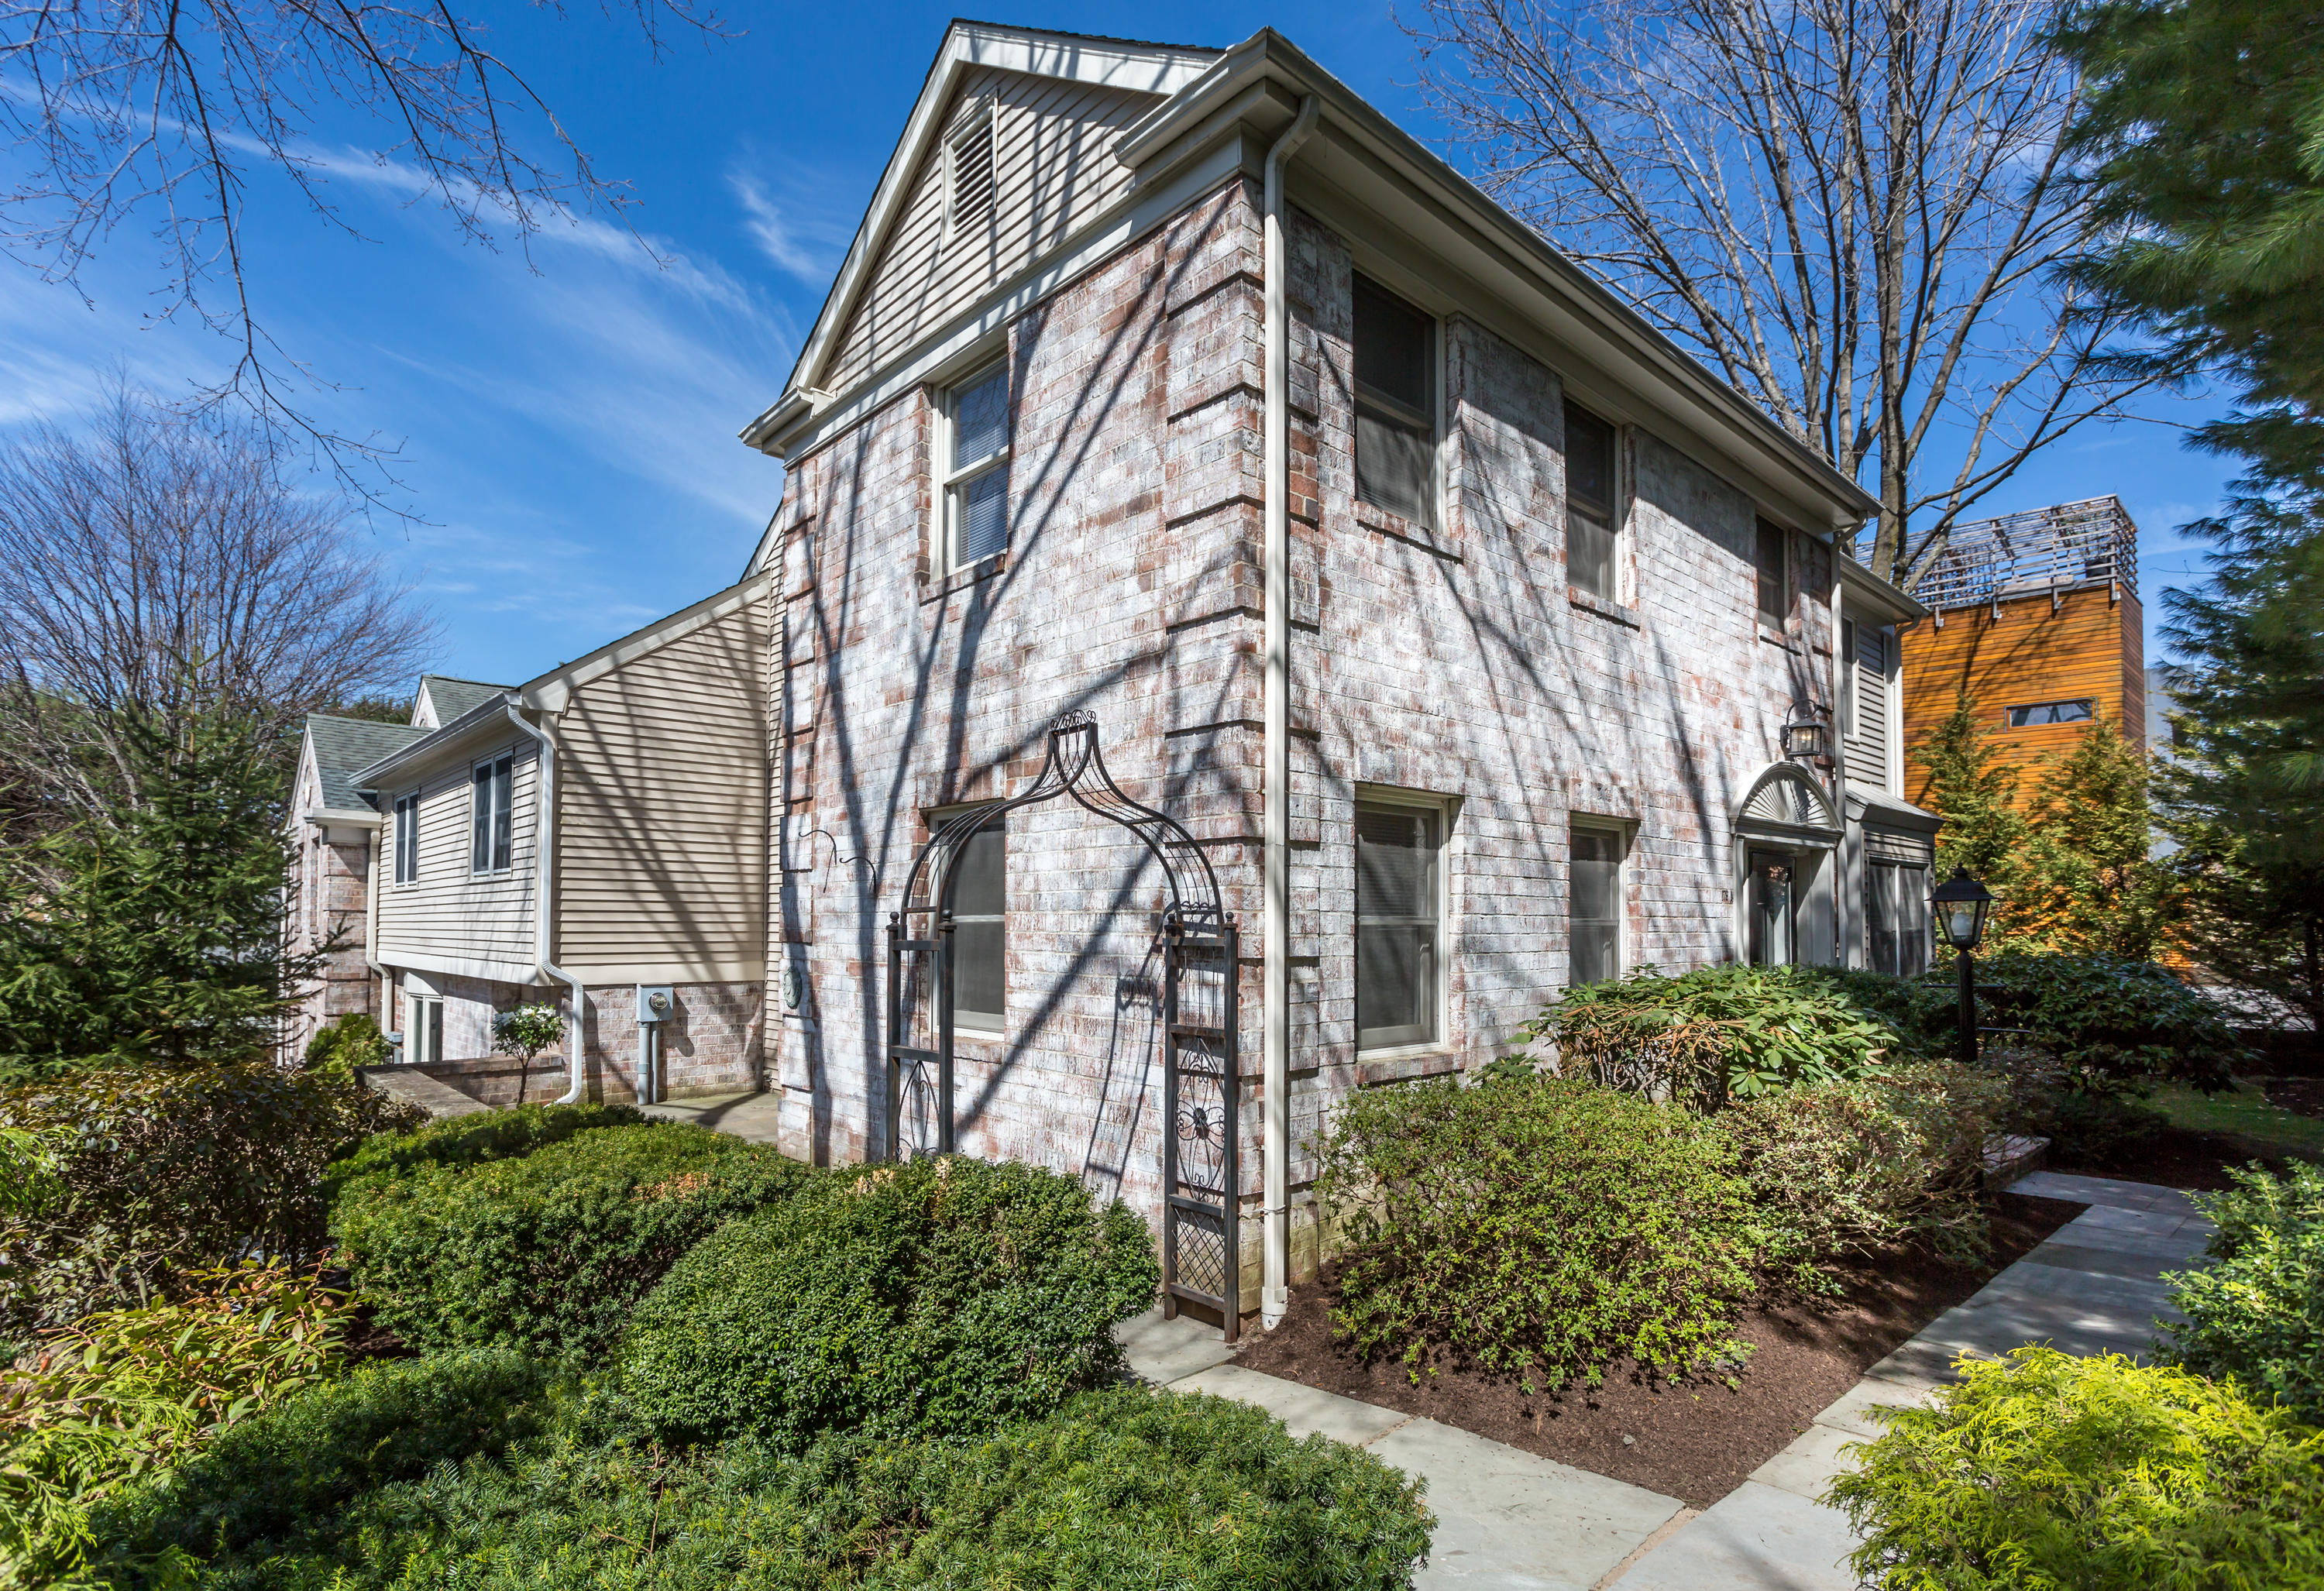 Condominium for Sale at Carefree In-Town Condo 179 Park Street A New Canaan, Connecticut 06840 United States